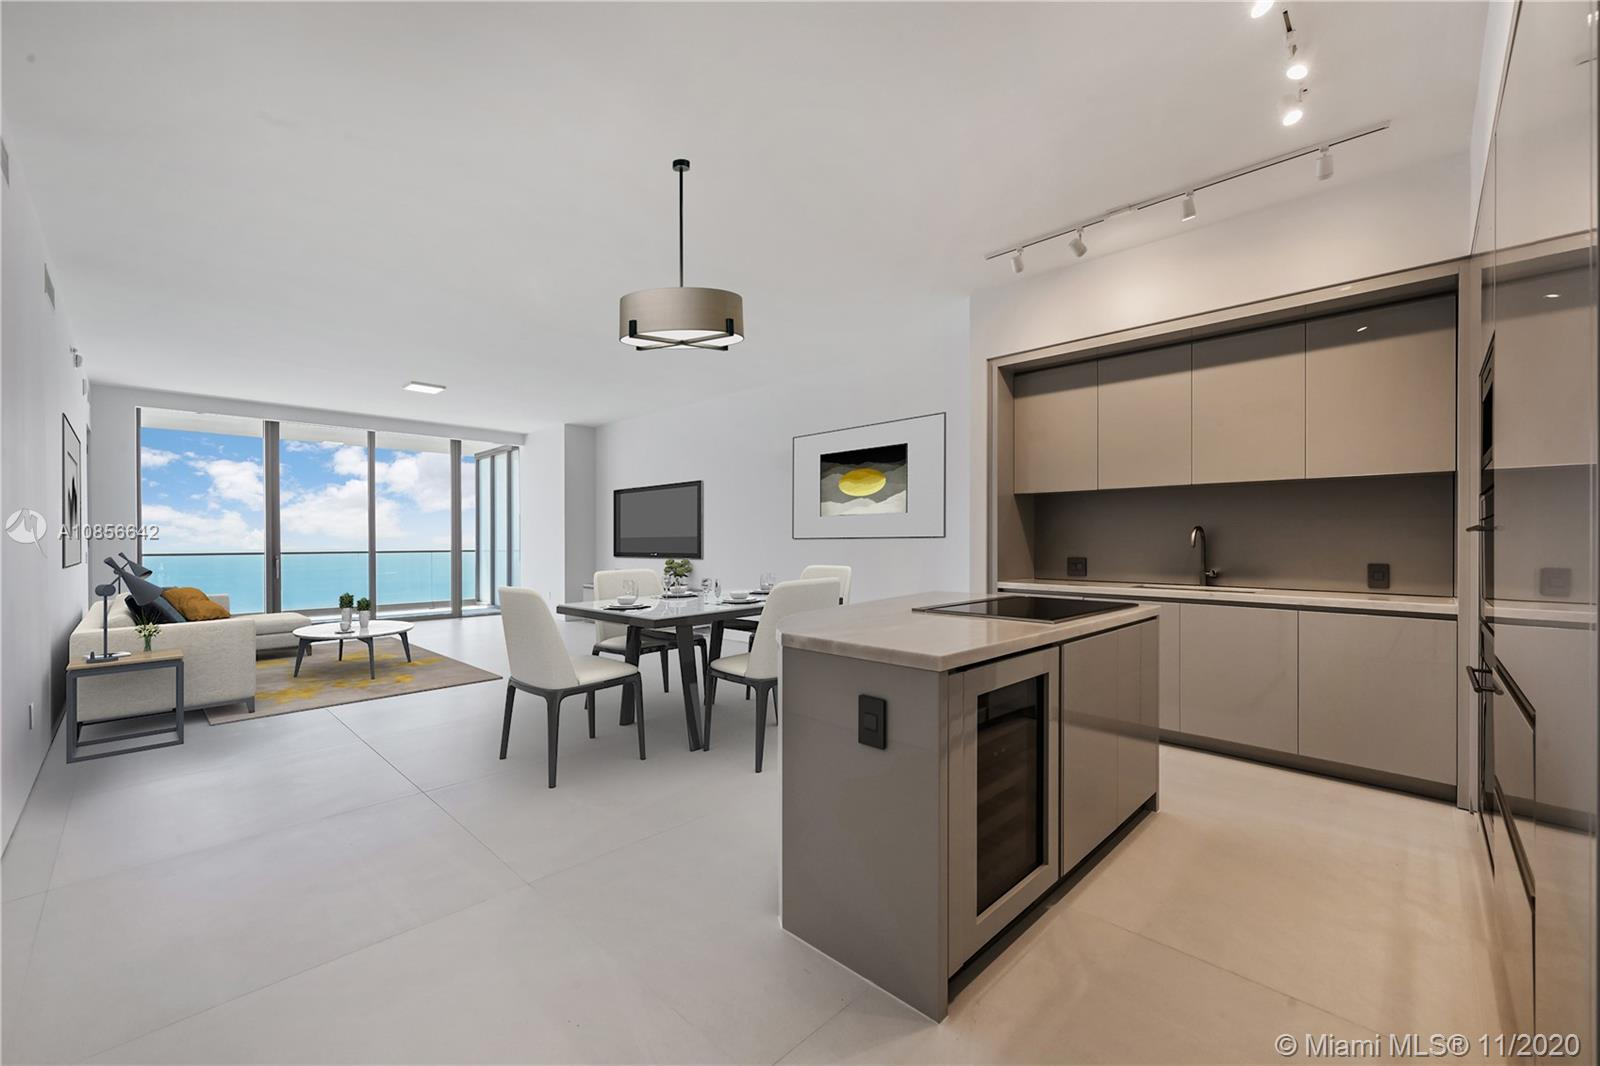 18975 Collins Ave, Sunny Isles Beach, Florida